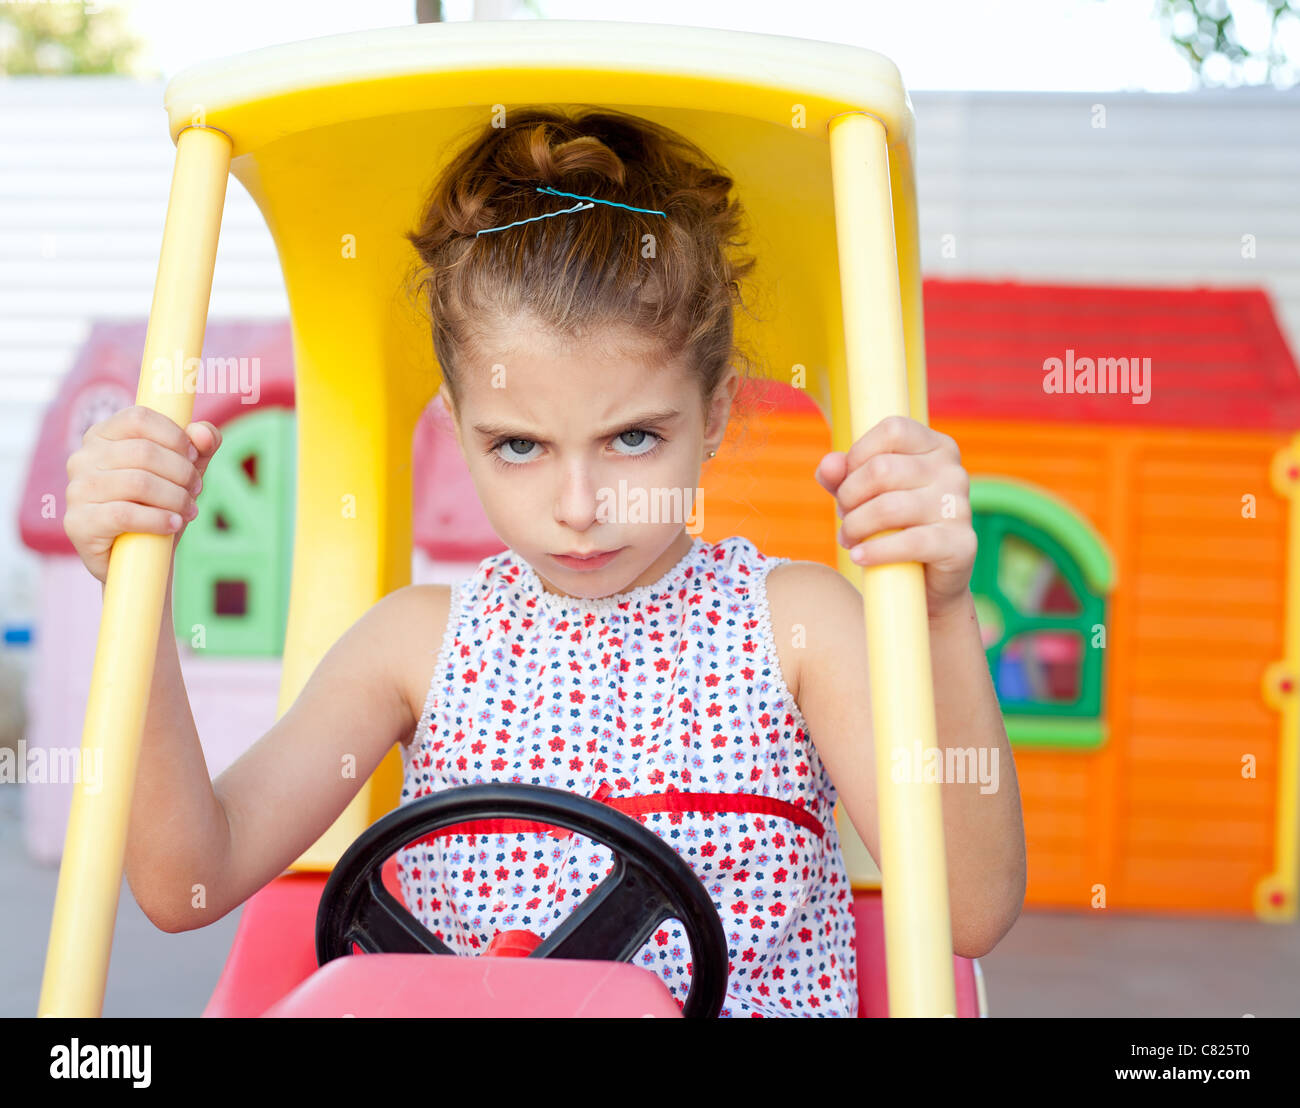 Angry toy car driver children girl in playground - Stock Image